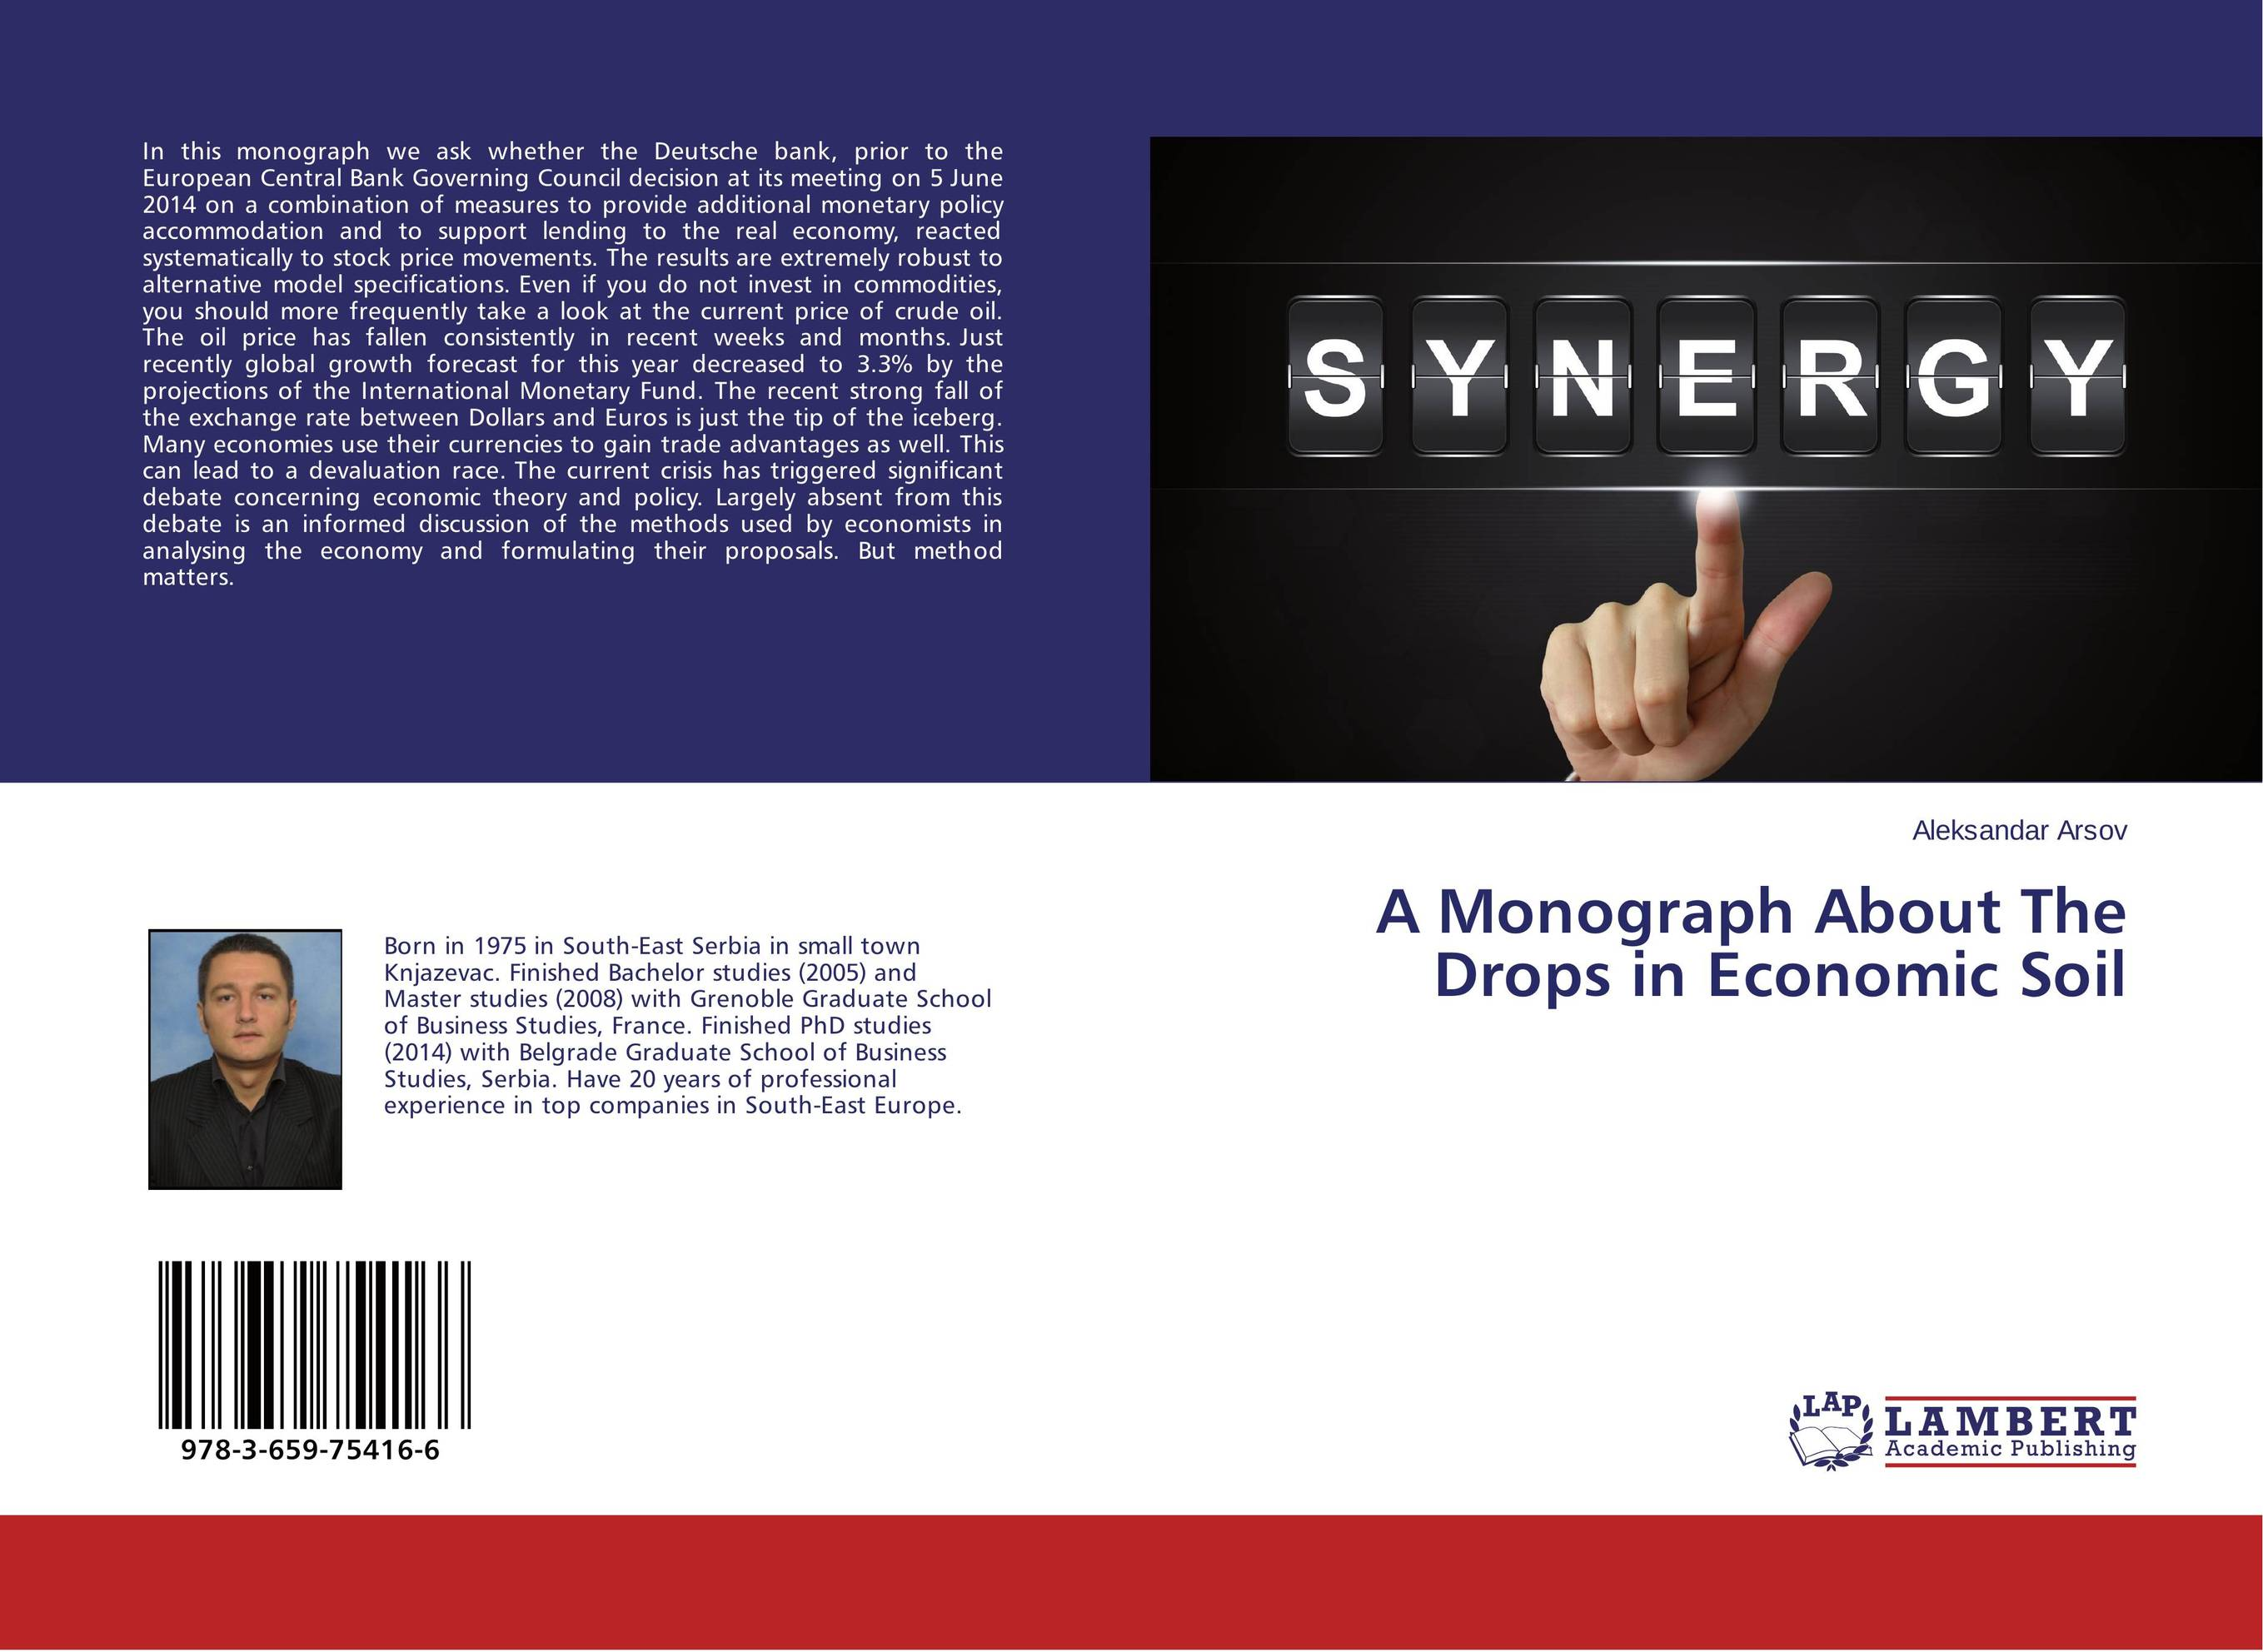 A Monograph About The Drops in Economic Soil drops of god